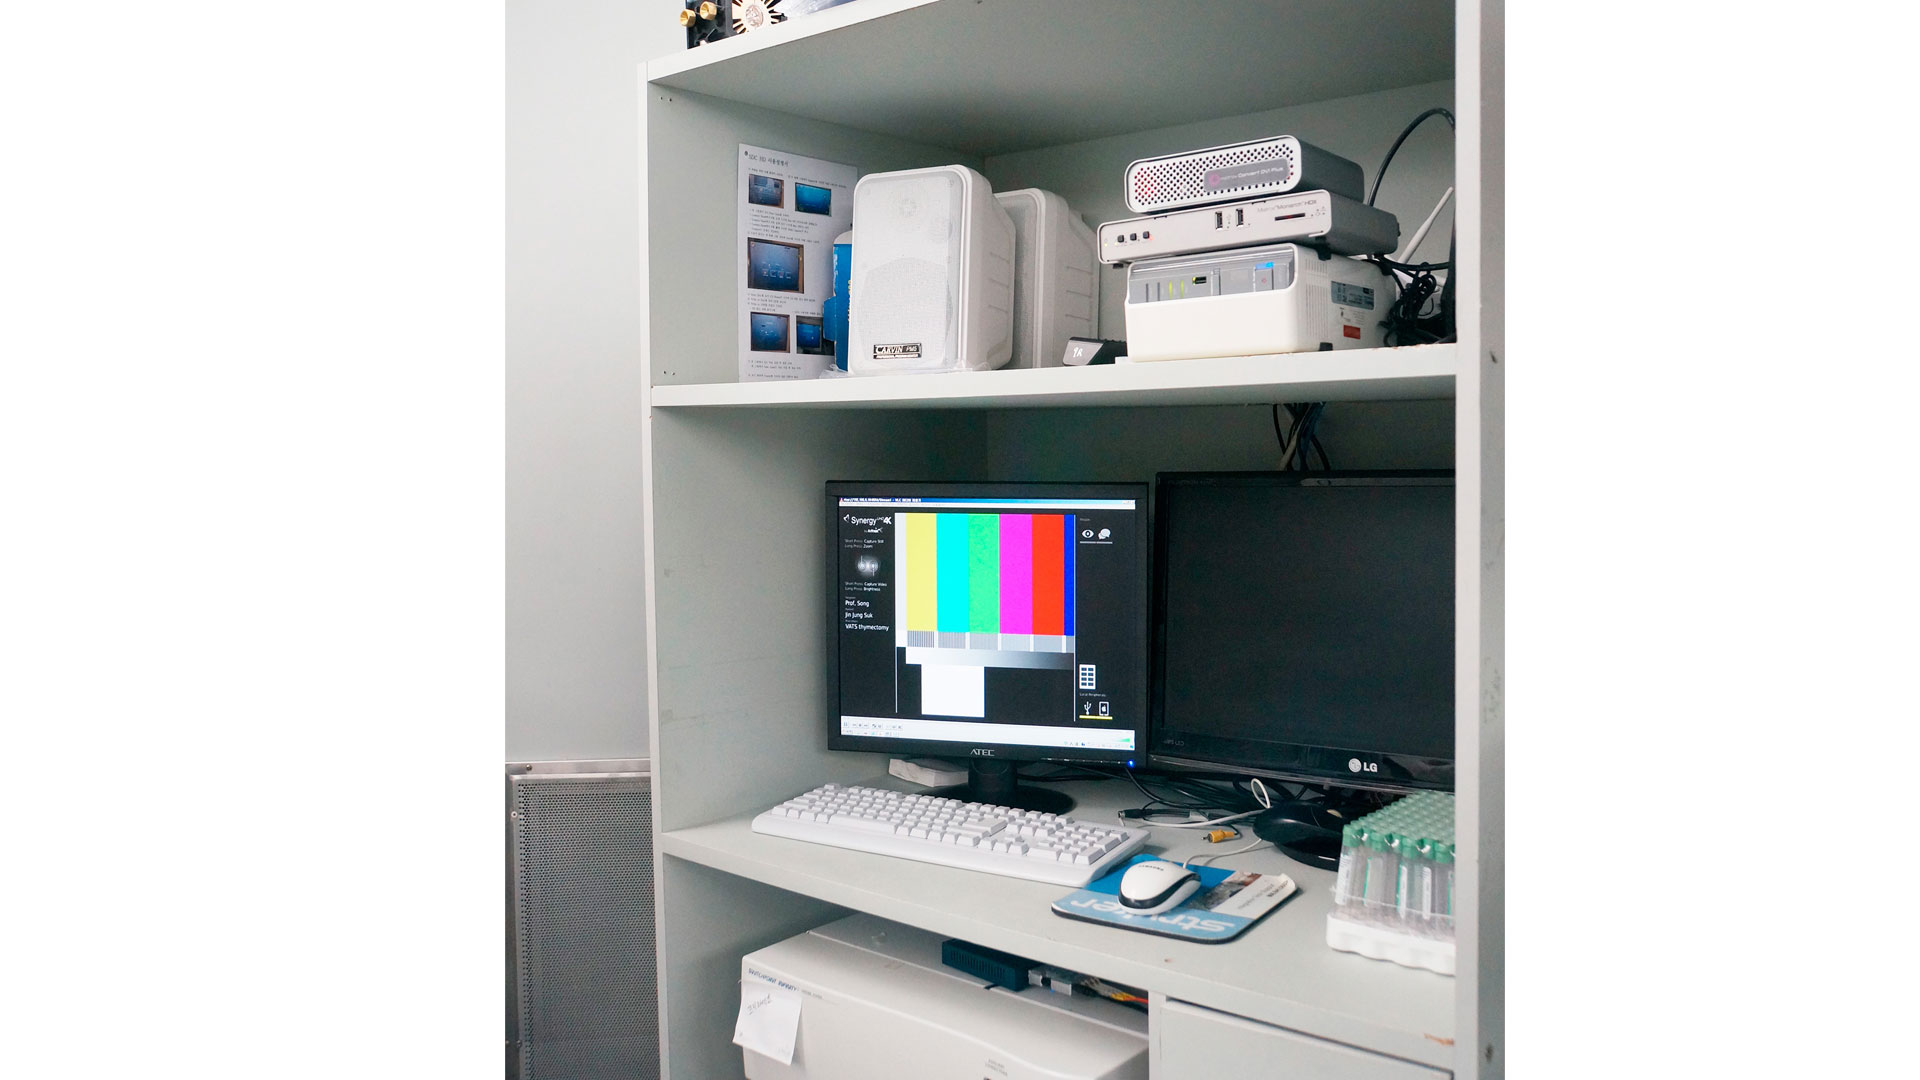 Matrox Monarch HDX H.264 File Splitting Feature Allows Dr. Song Sangyoon to Save Files in Segments While Recording.